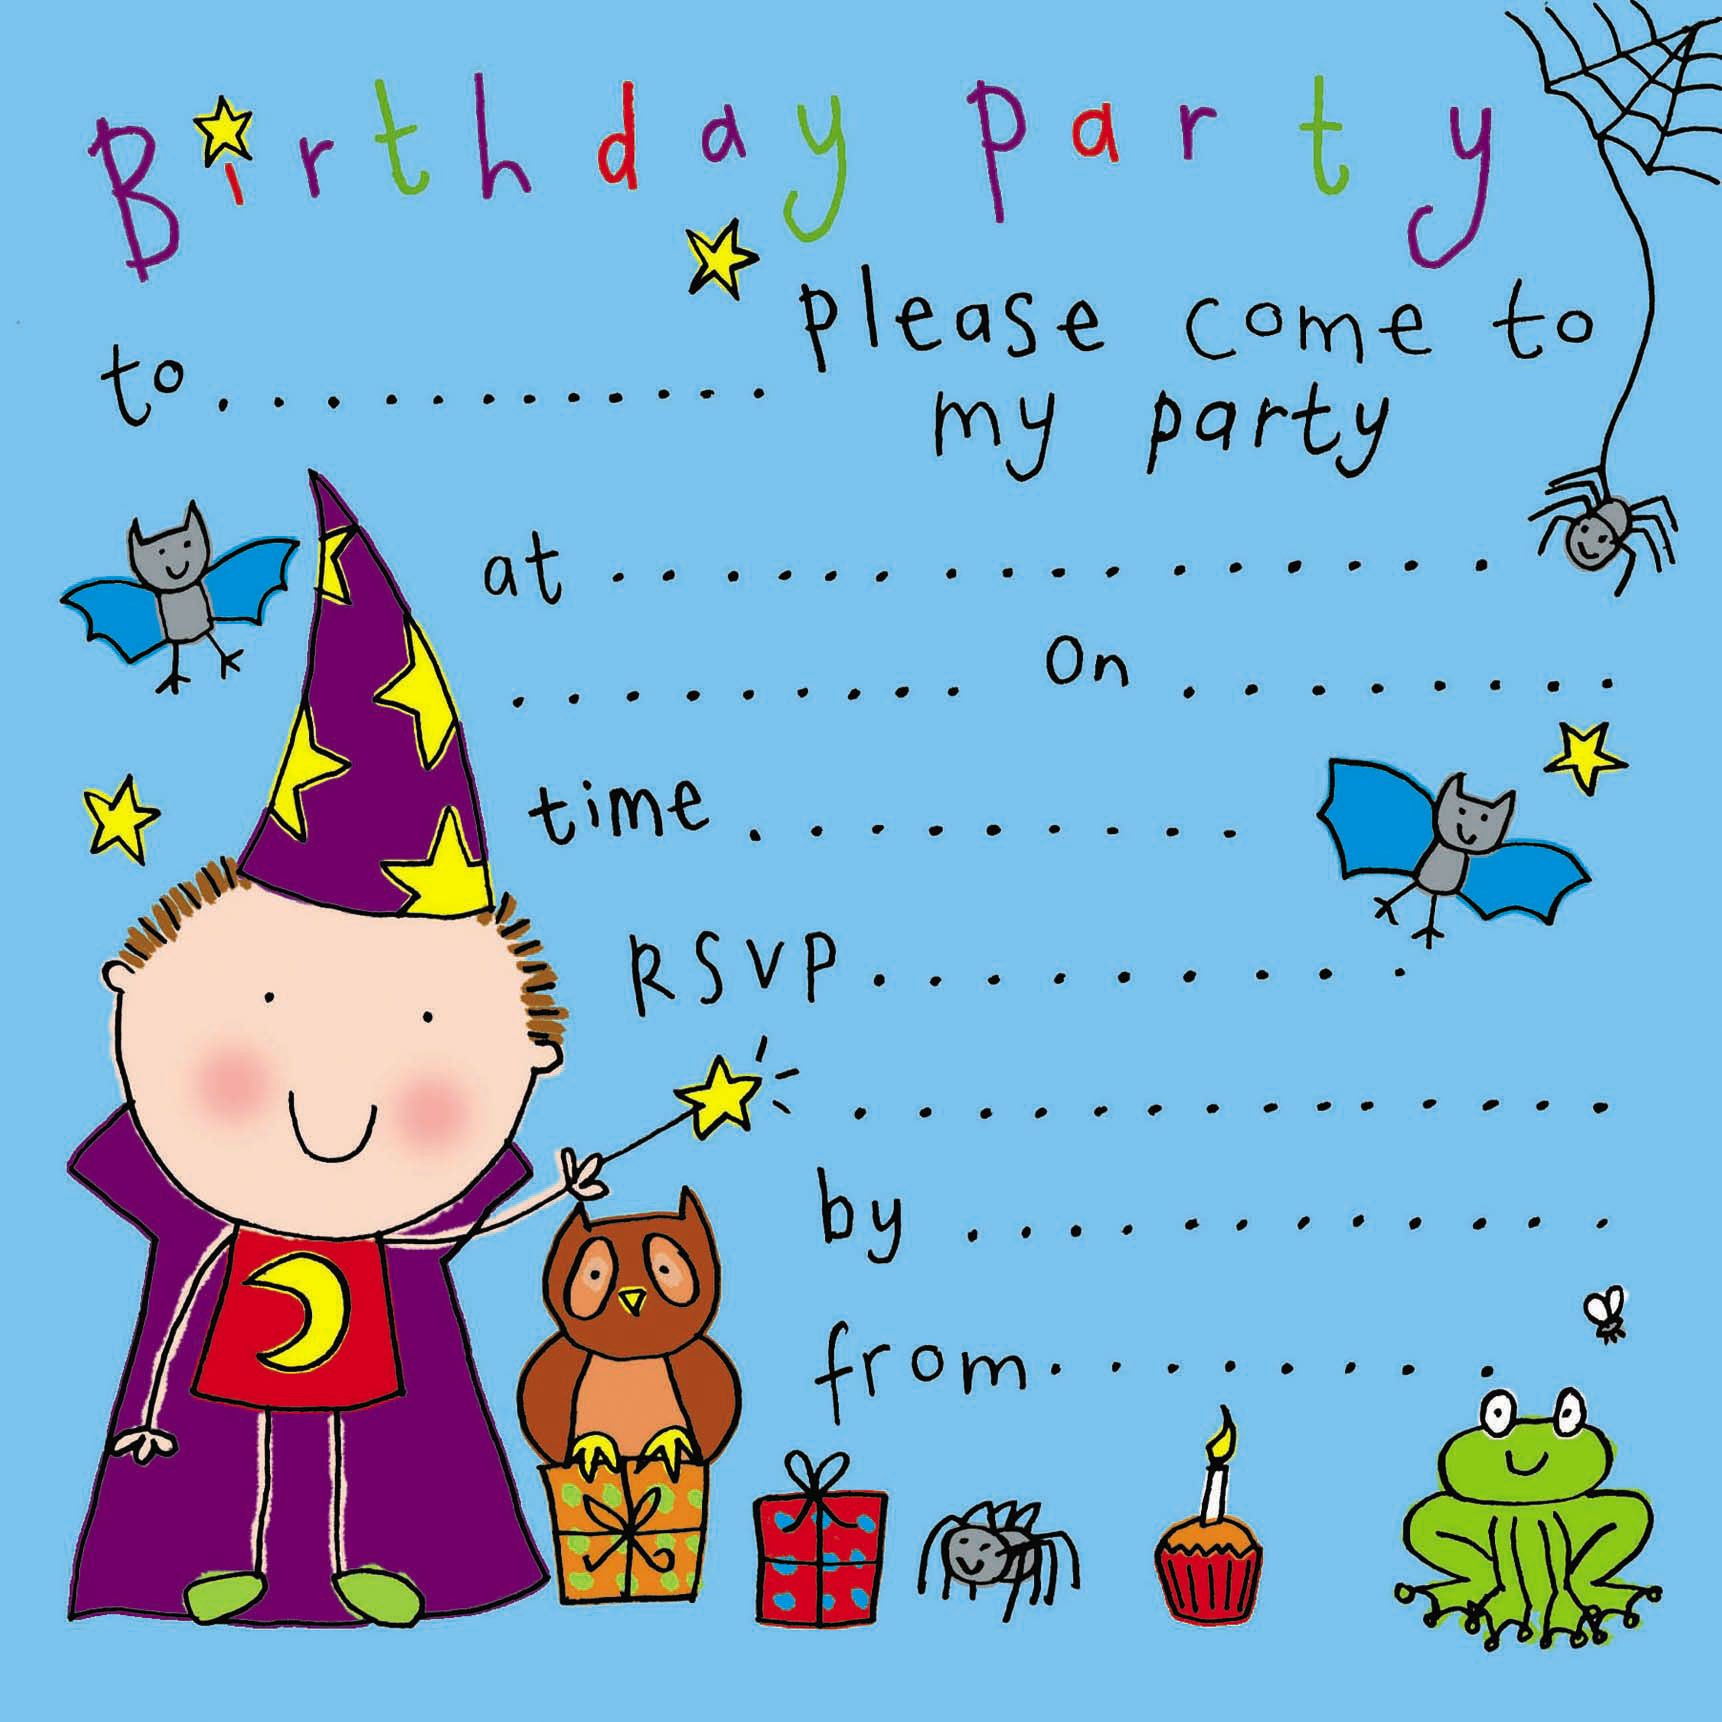 Birthday Party Invitations For Kids  party invitations birthday party invitations kids party